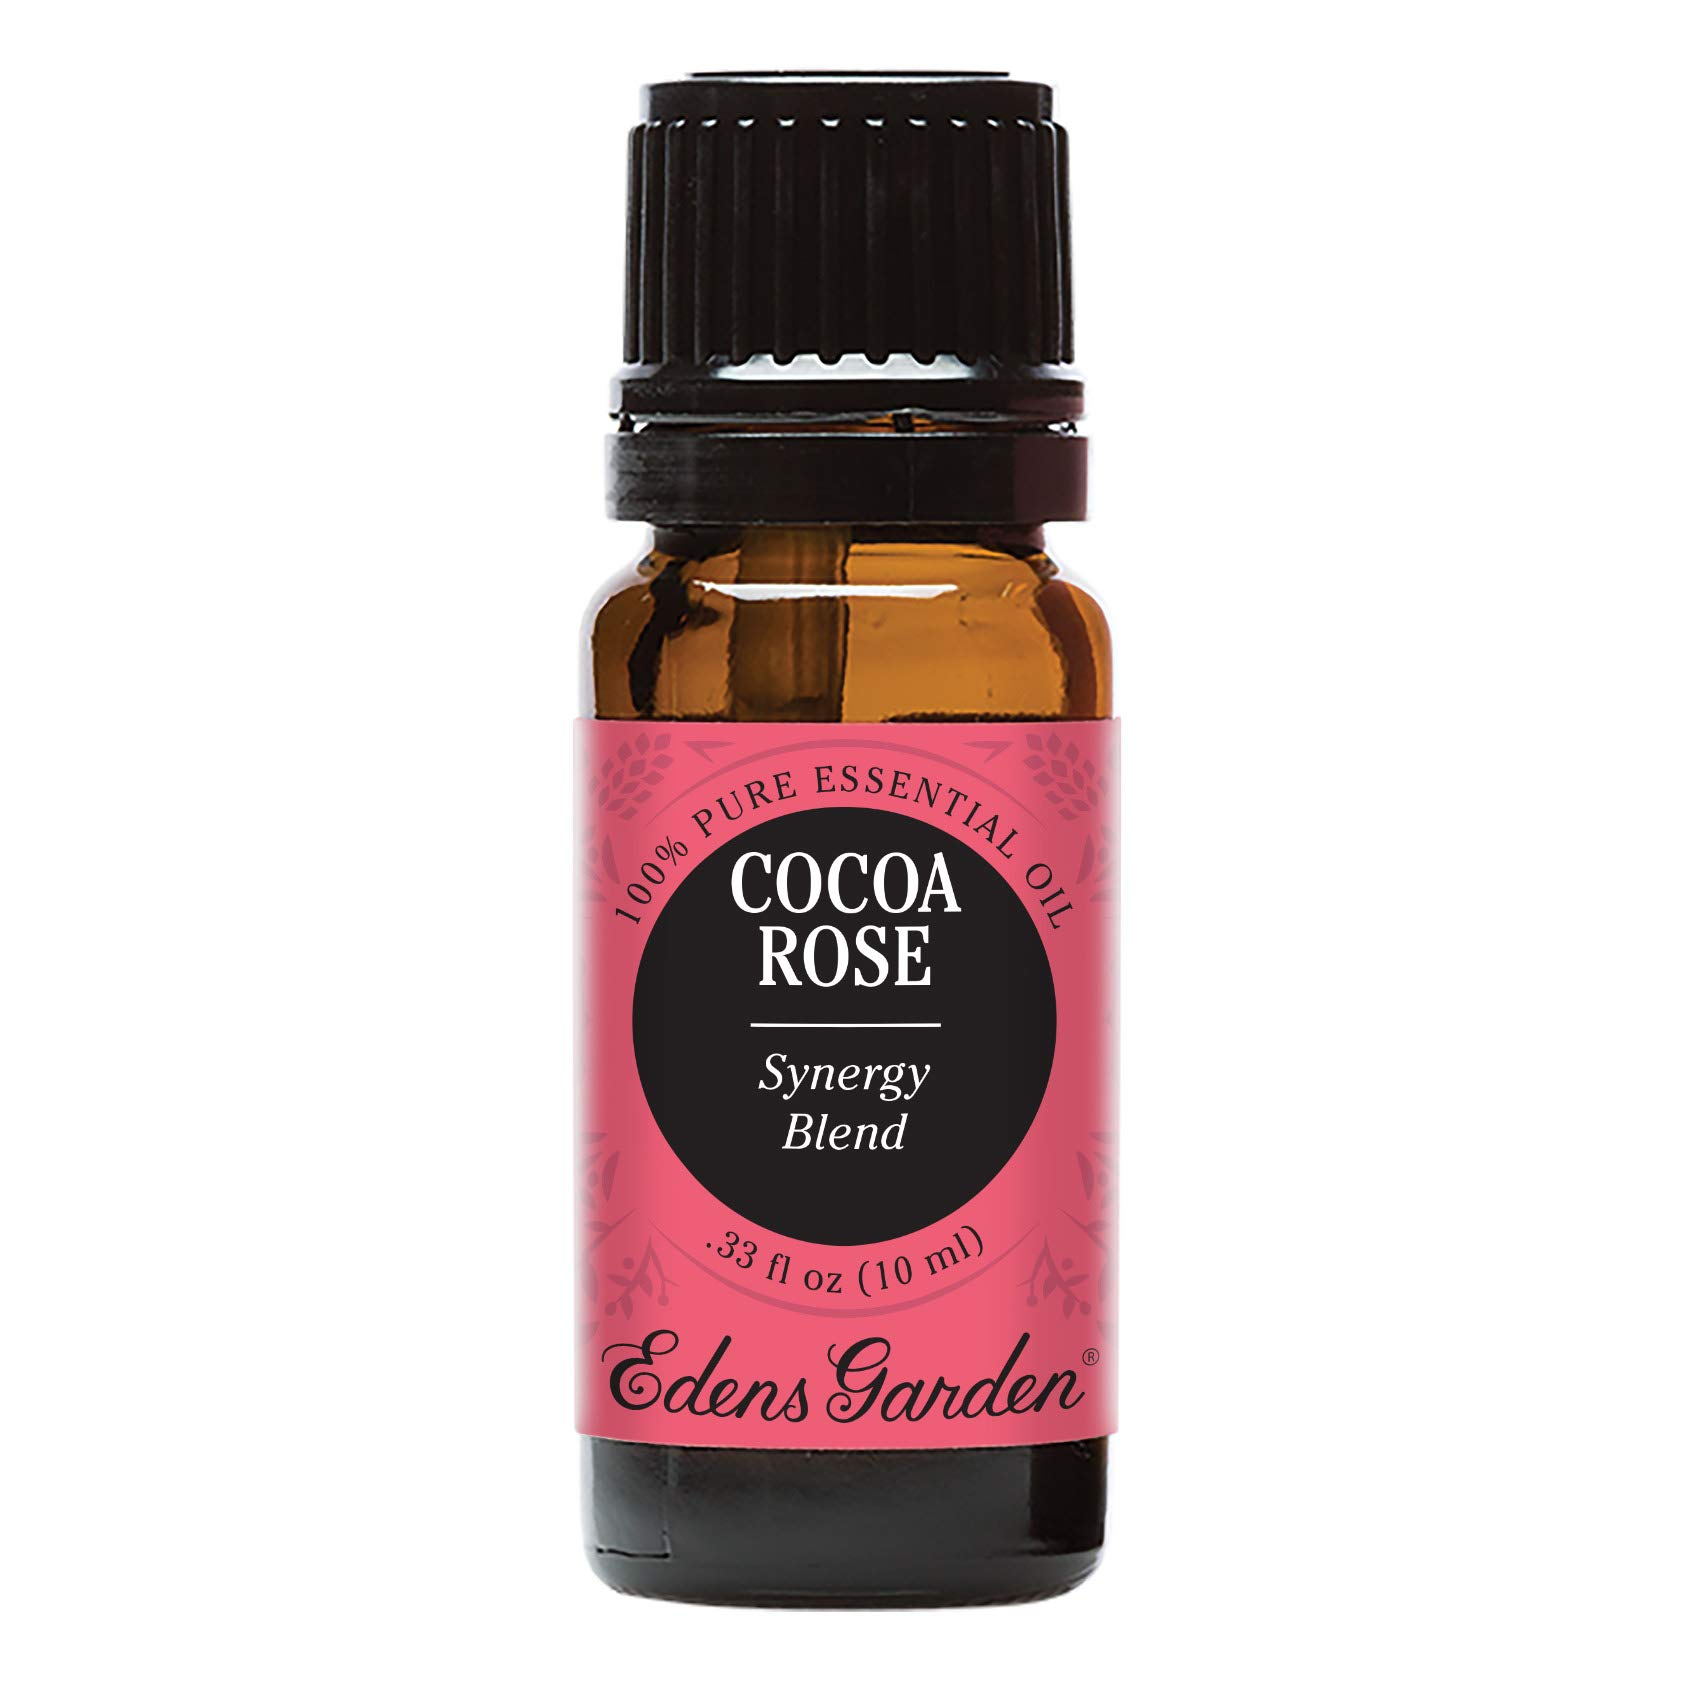 Edens Garden Cocoa Rose Essential Oil Synergy Blend, 100% Pure Therapeutic Grade (Highest Quality Aromatherapy Oils- Aphrodisiac & Stress), 10 ml by Edens Garden